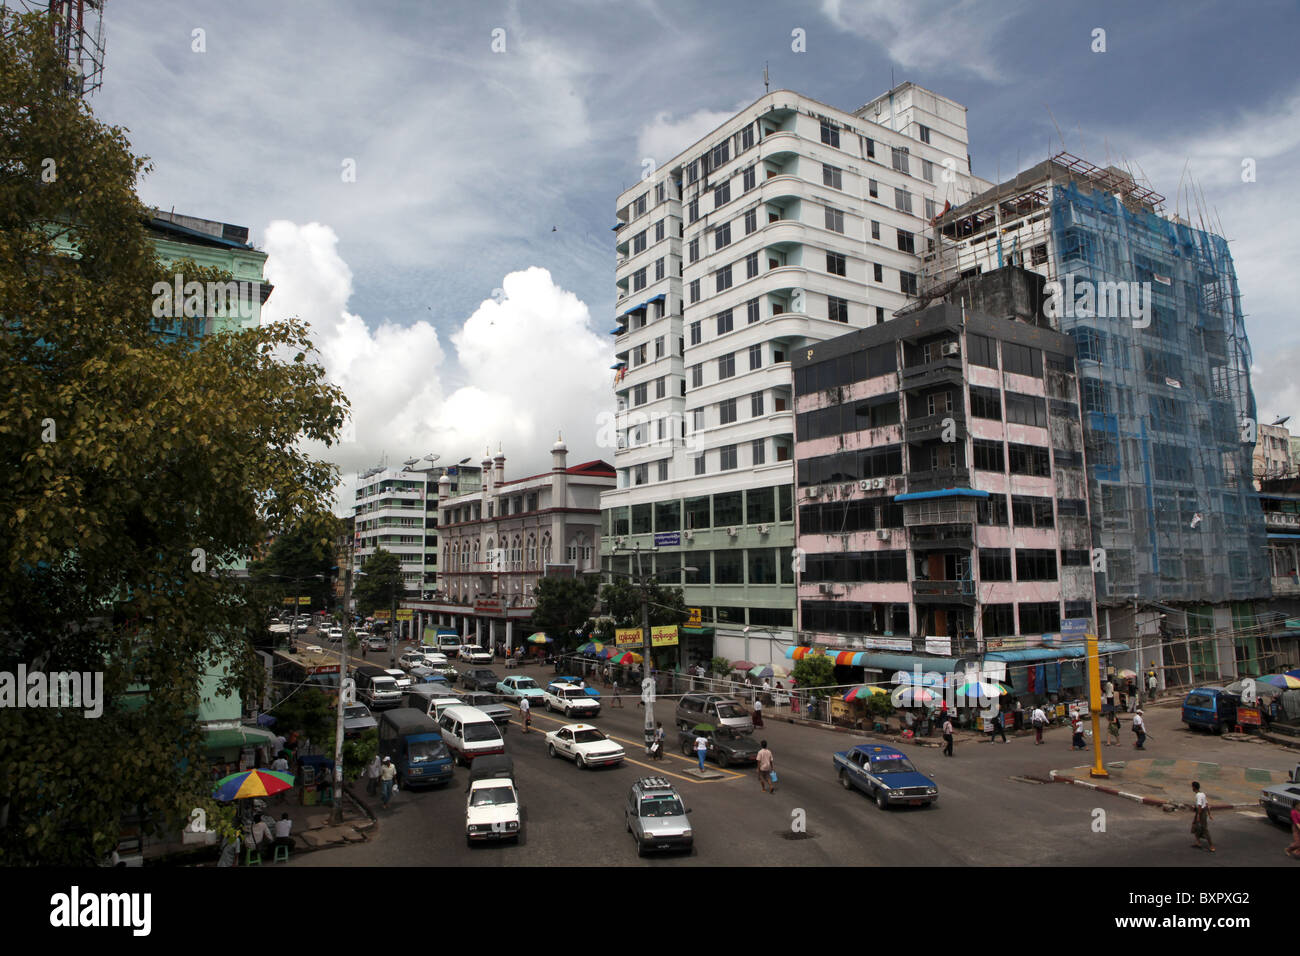 A view of the city centre streets in Yangon or Rangoon, Myanmar or Burma in Asia - Stock Image